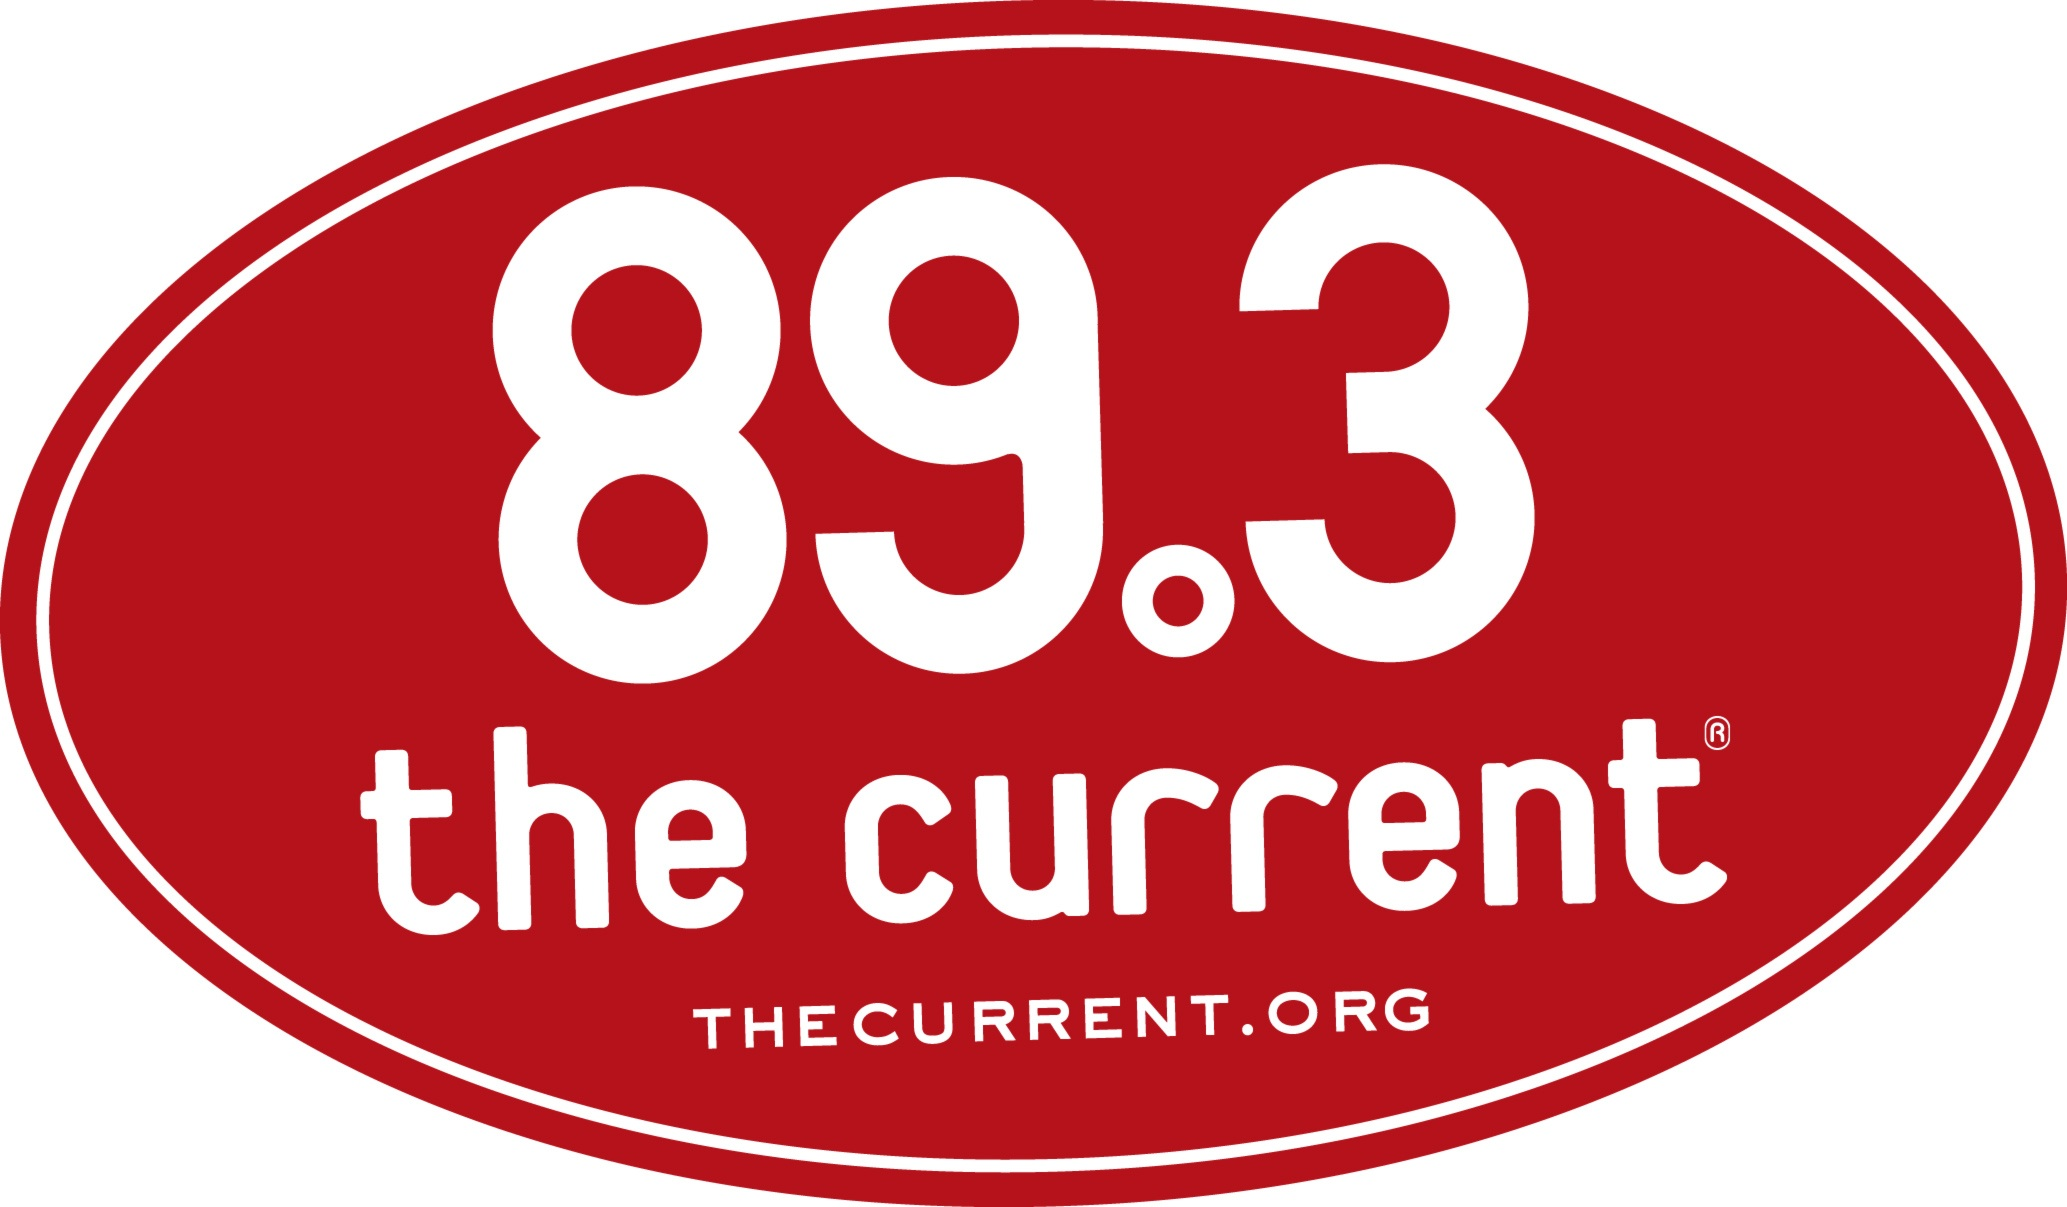 bigger 89.3 the Current logo.jpg